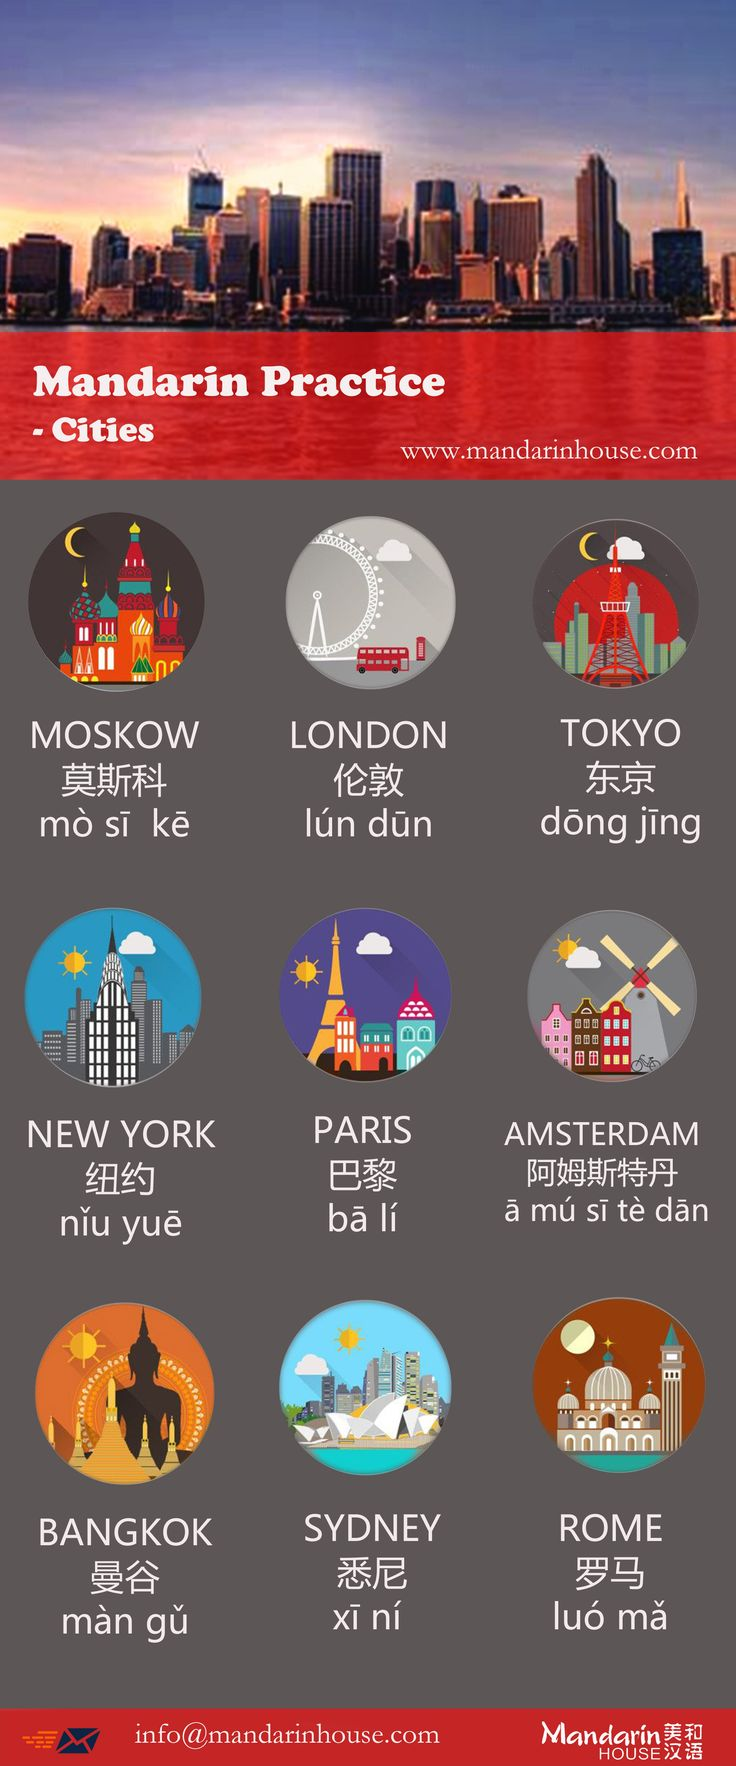 Cities in Chinese.For more information please contact sophia.zhang@mandarinhouse.cn The best  Mandarin School in China.